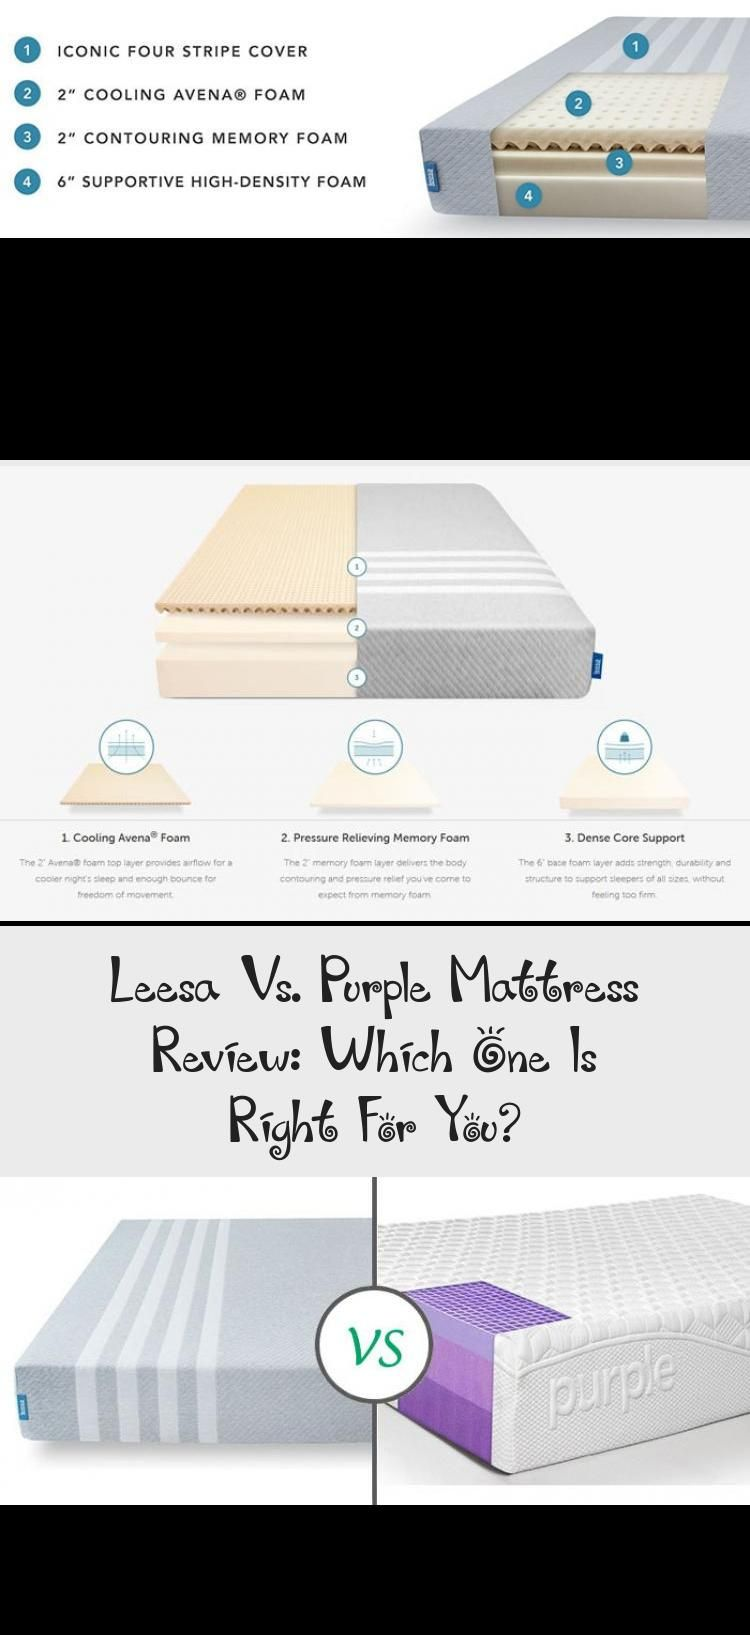 A Leesa Vs Purple Mattress Review Compares Both Mattresses For Differences We Spotted Very Few Pu In 2020 Purple Mattress Reviews Purple Mattress Mattresses Reviews